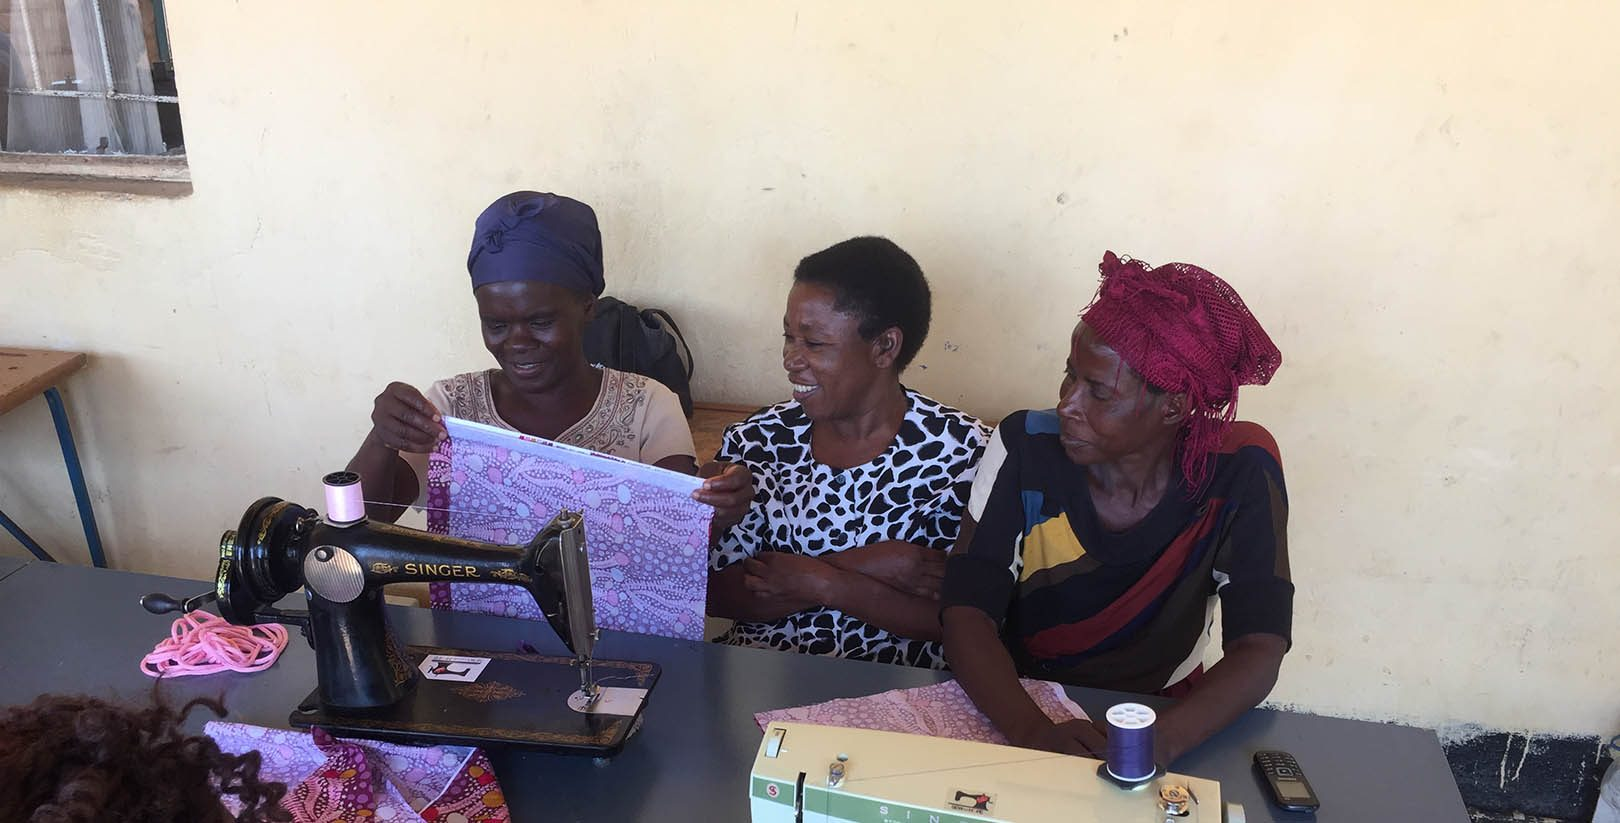 Women in Zambia learning on their new sewing machine donated by Sew Much Hope